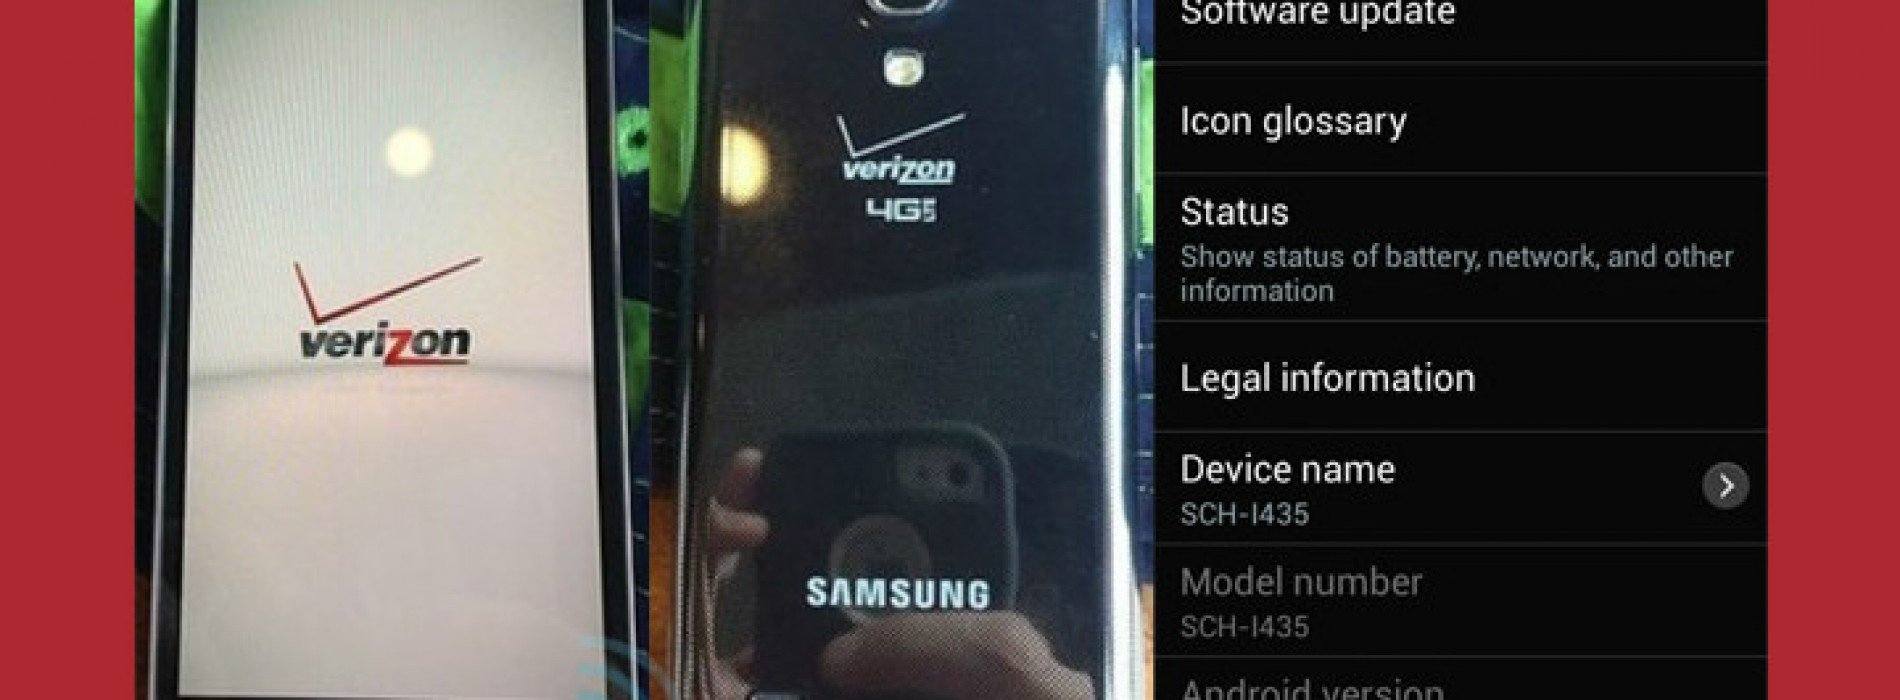 Samsung Galaxy S4 Mini appears Verizon-bound